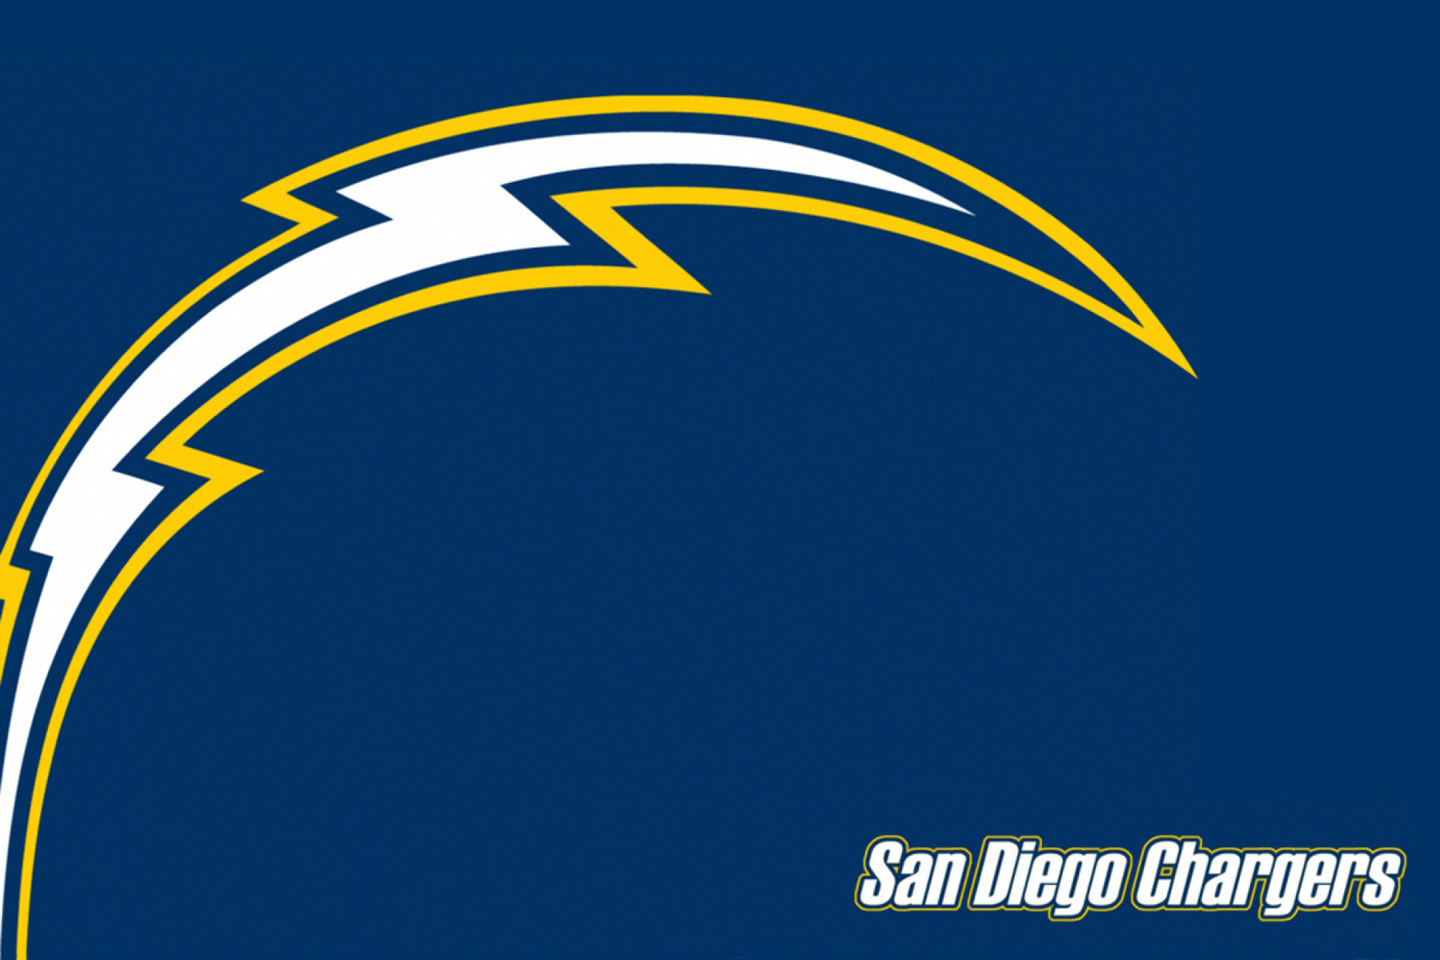 San Diego Chargers Lightning 1440 960 Digital Citizen